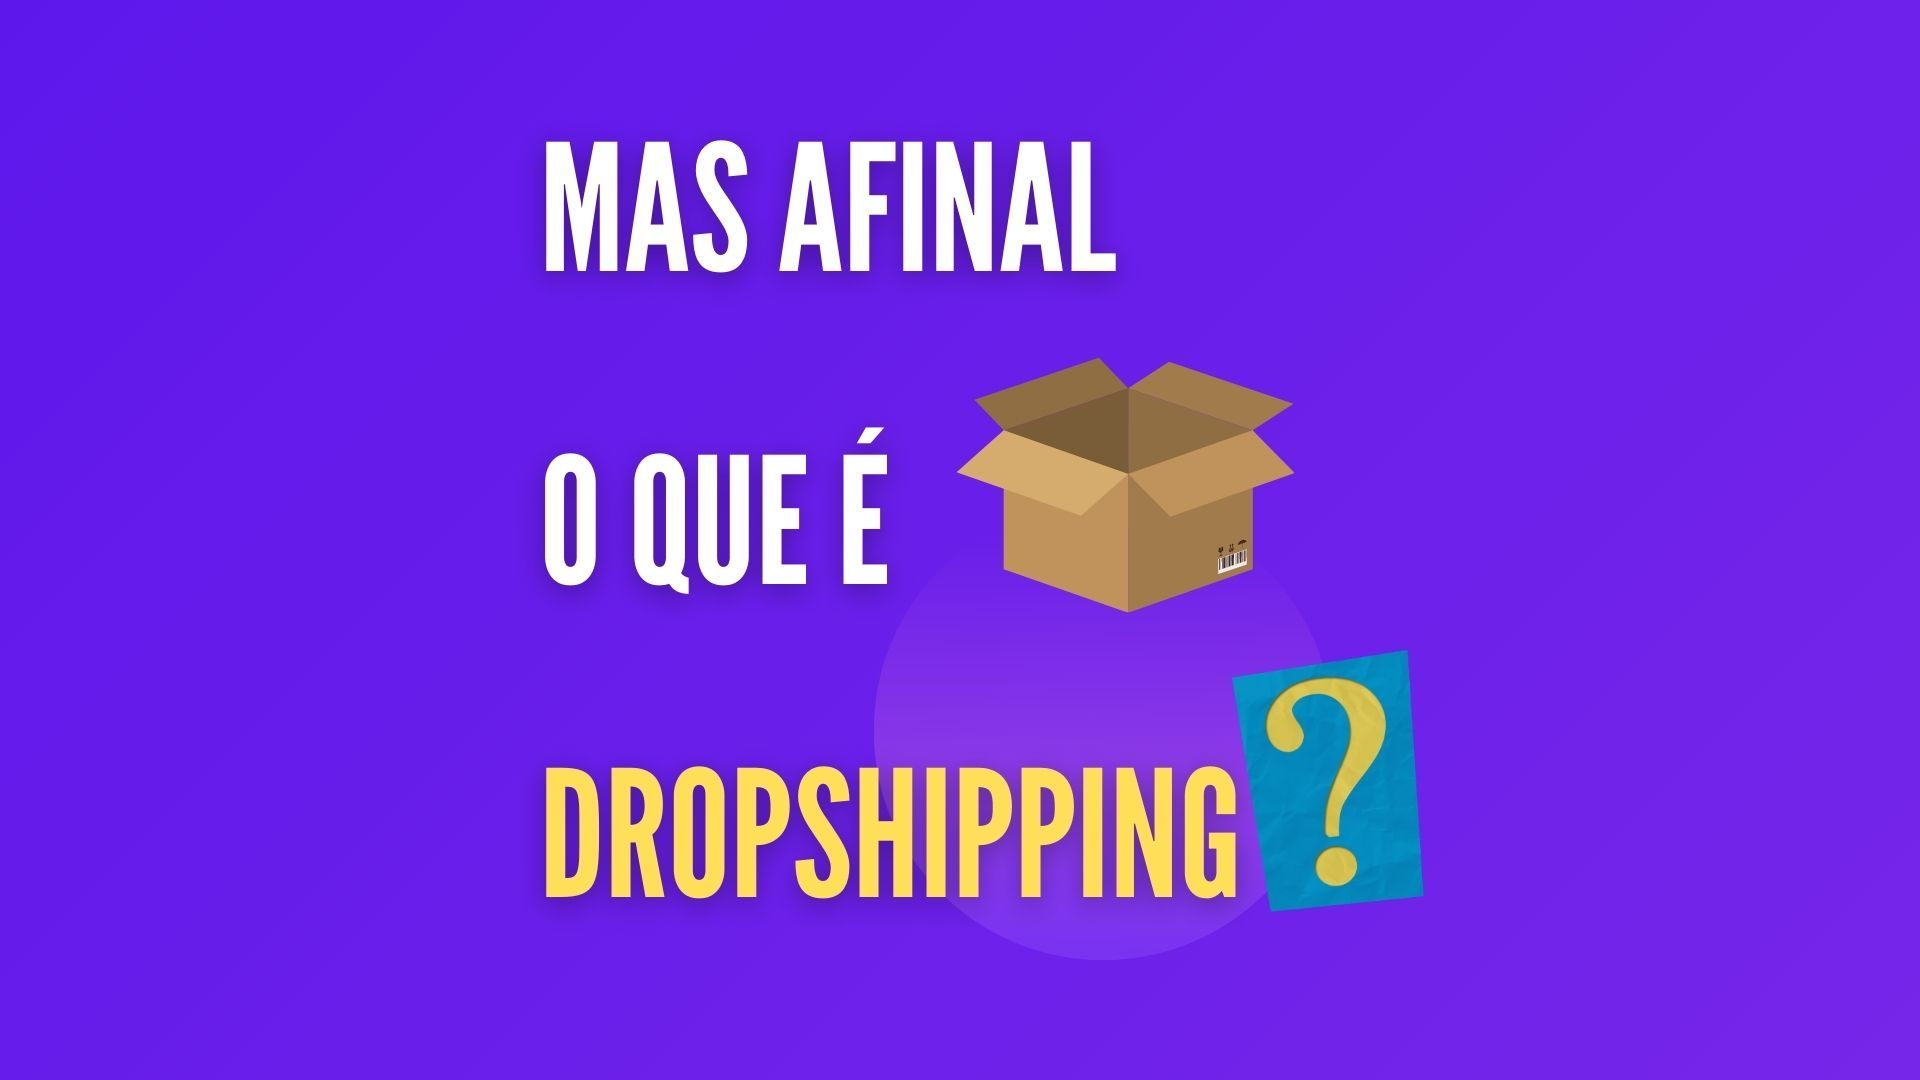 O que é Dropshipping?